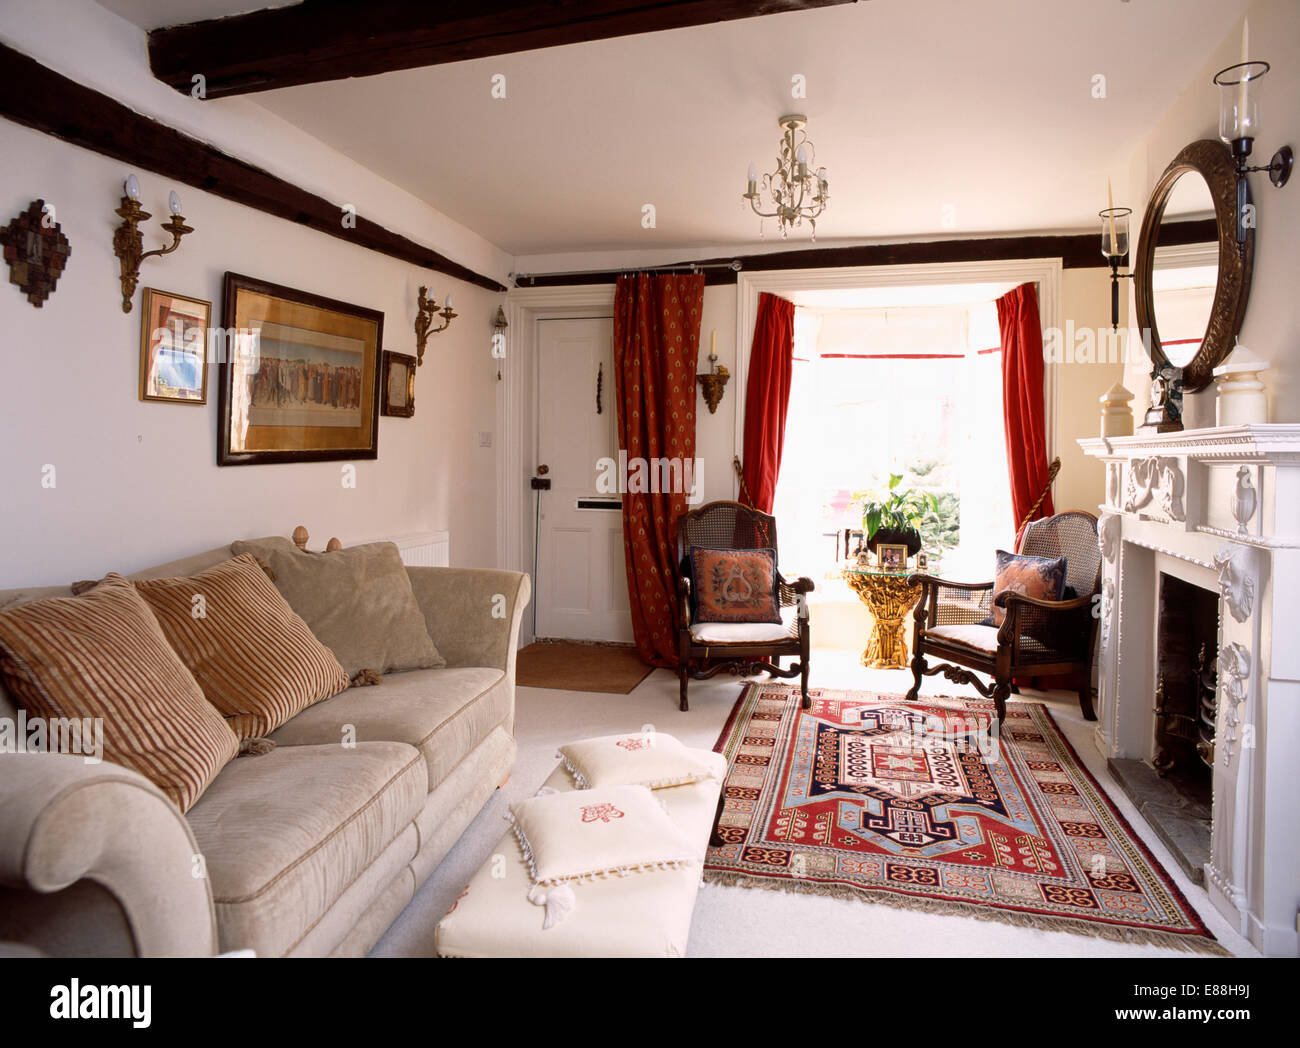 Red And Beige Living Room Patterned Rug And Beige Velour Sofa In Country Living Room With